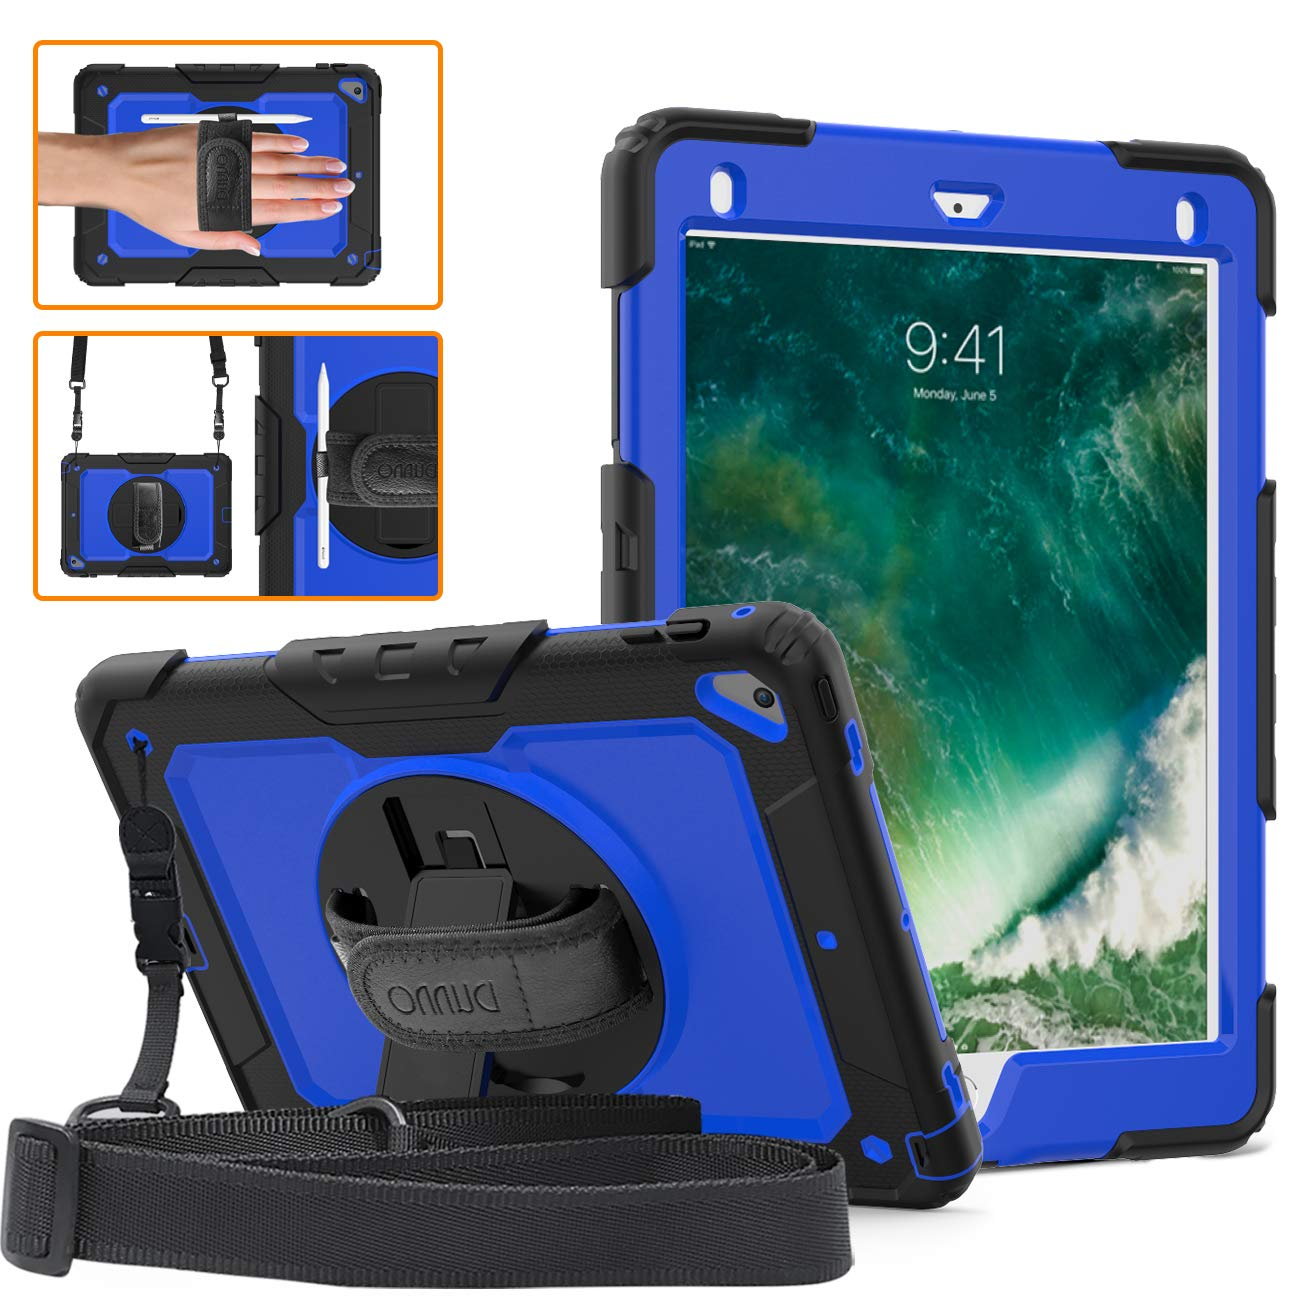 DUNNO iPad 9.7 2017/2018 case - Heavy Duty Protective Case with 360° Rotating Kickstand & Built-in Screen Protector Shockproof Design for Apple iPad 9.7 inch 2017/2018 (5th/6th Gen) Black/Blue